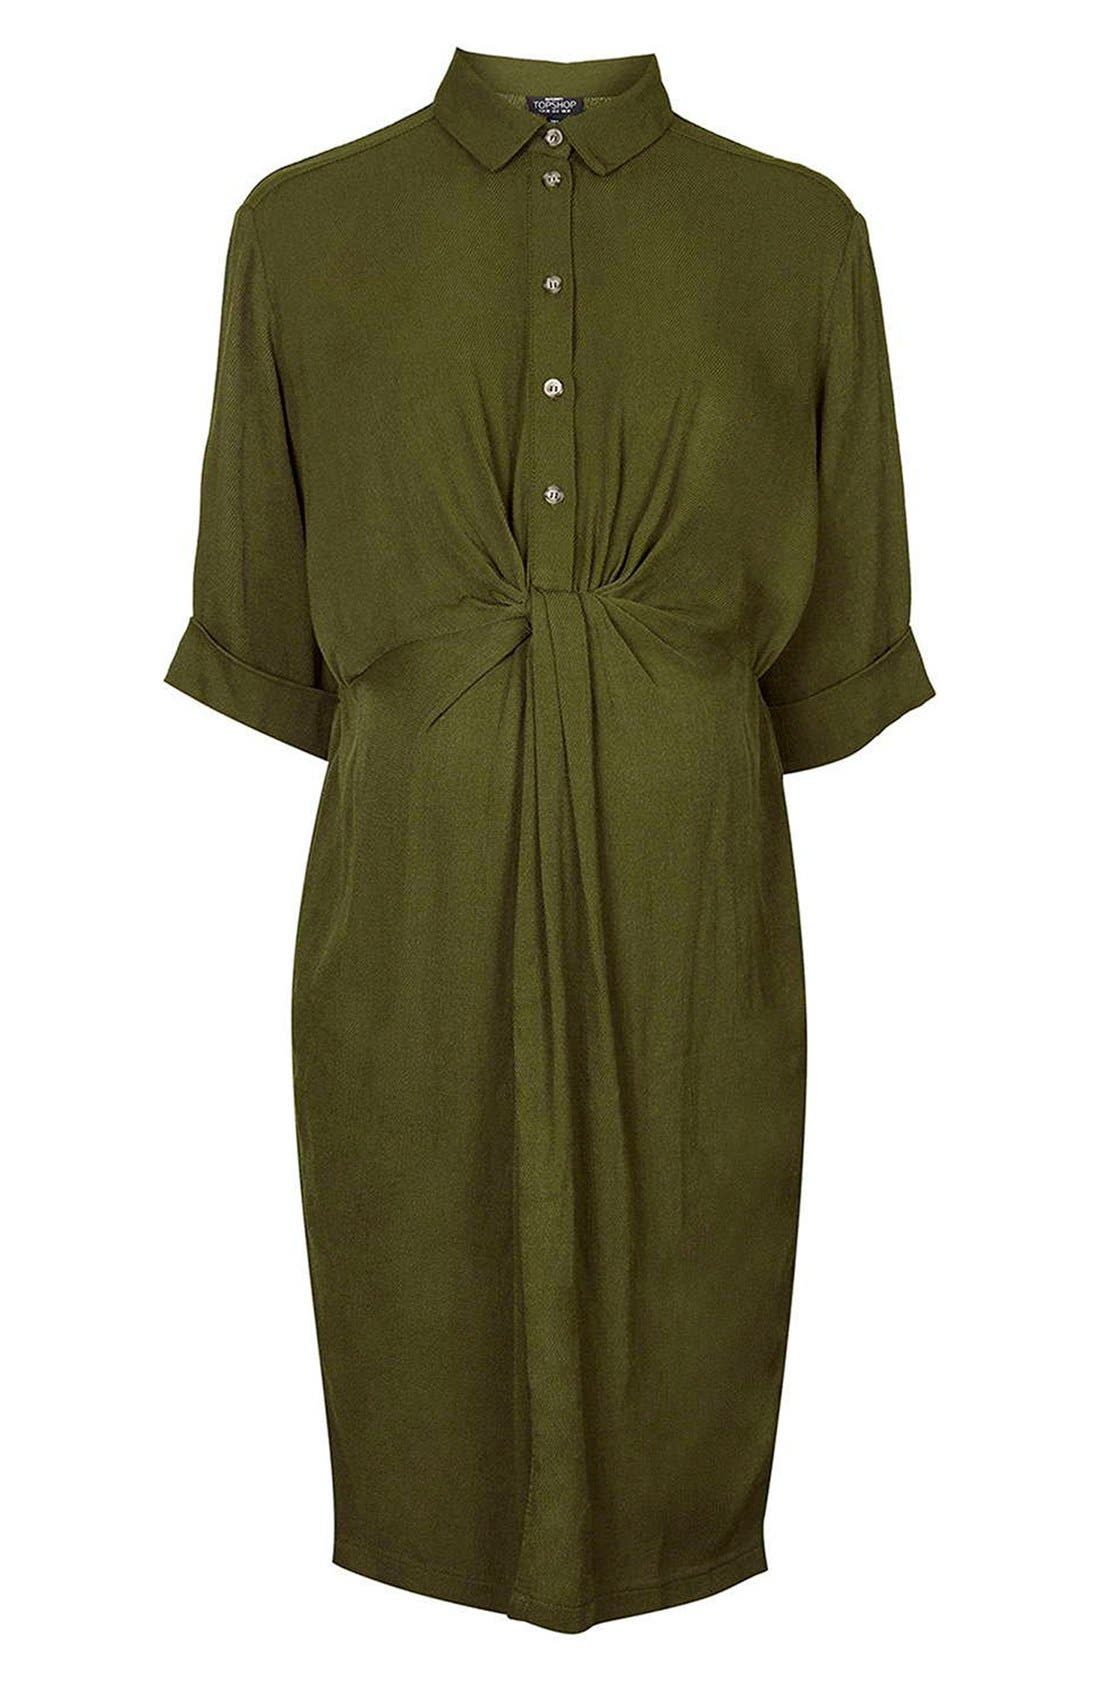 Alternate Image 1 Selected - Topshop Knot Front Maternity Shirtdress